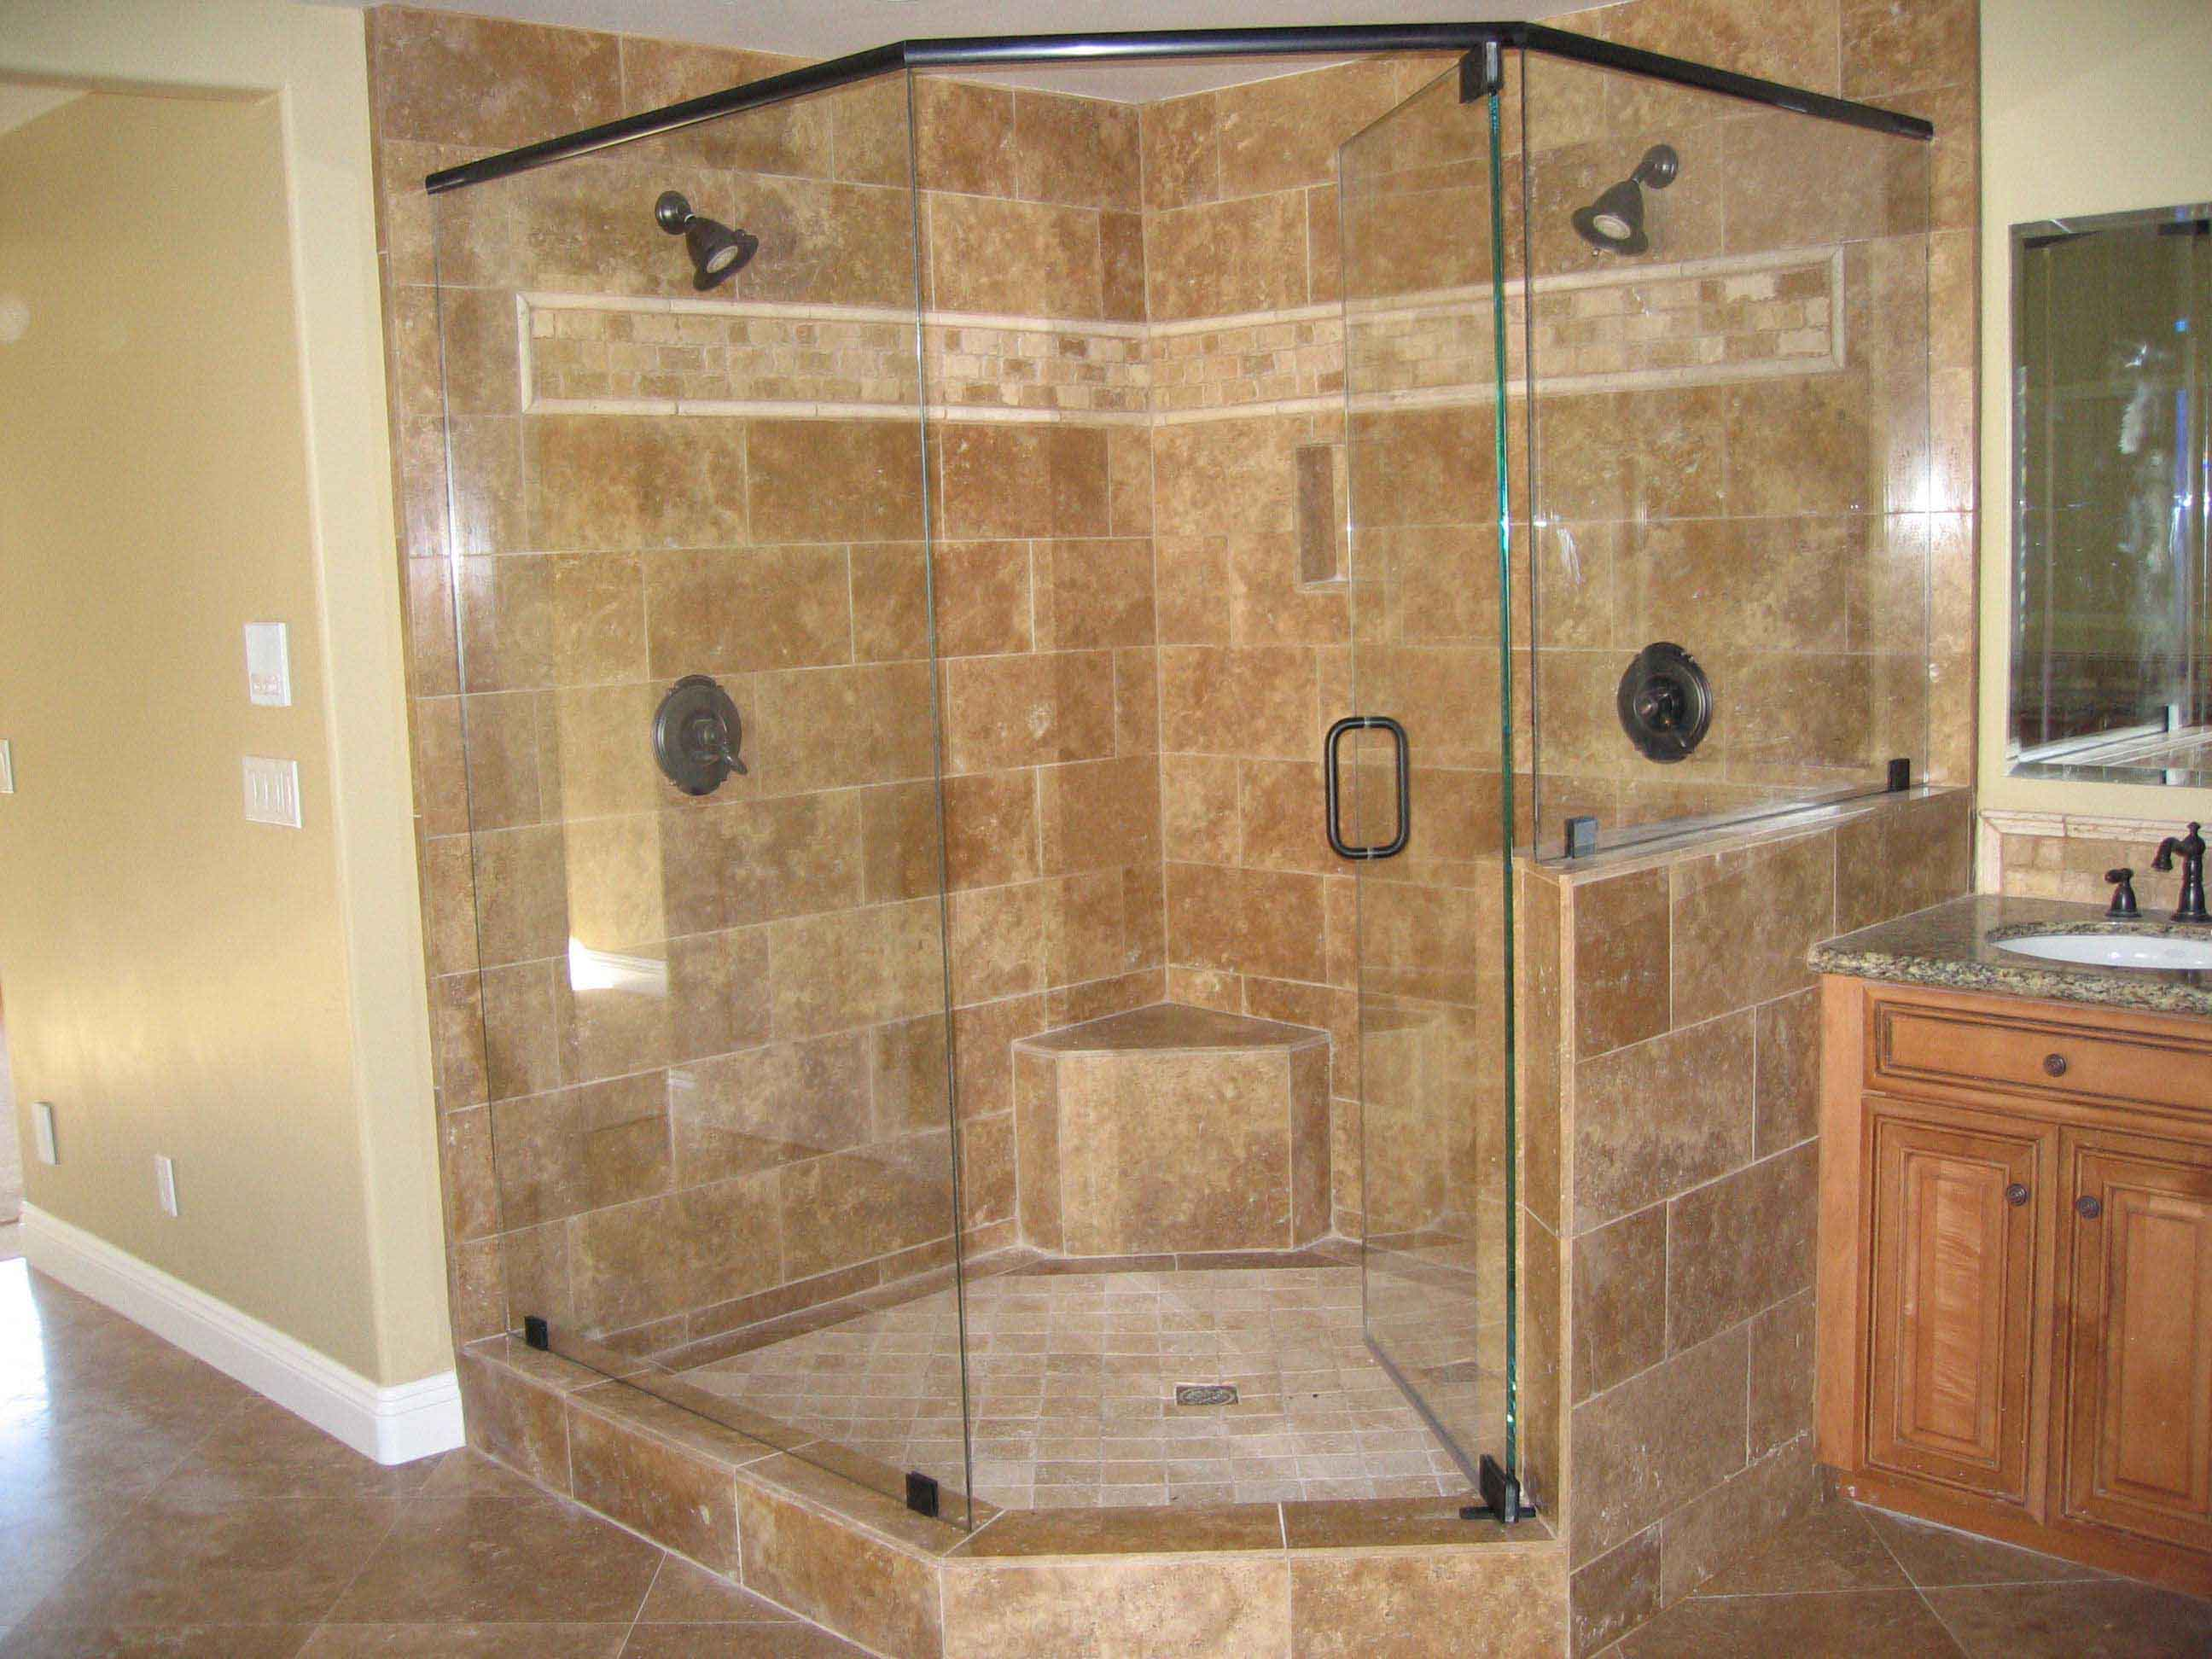 Framelss Shower Doors For Corner Shower Units